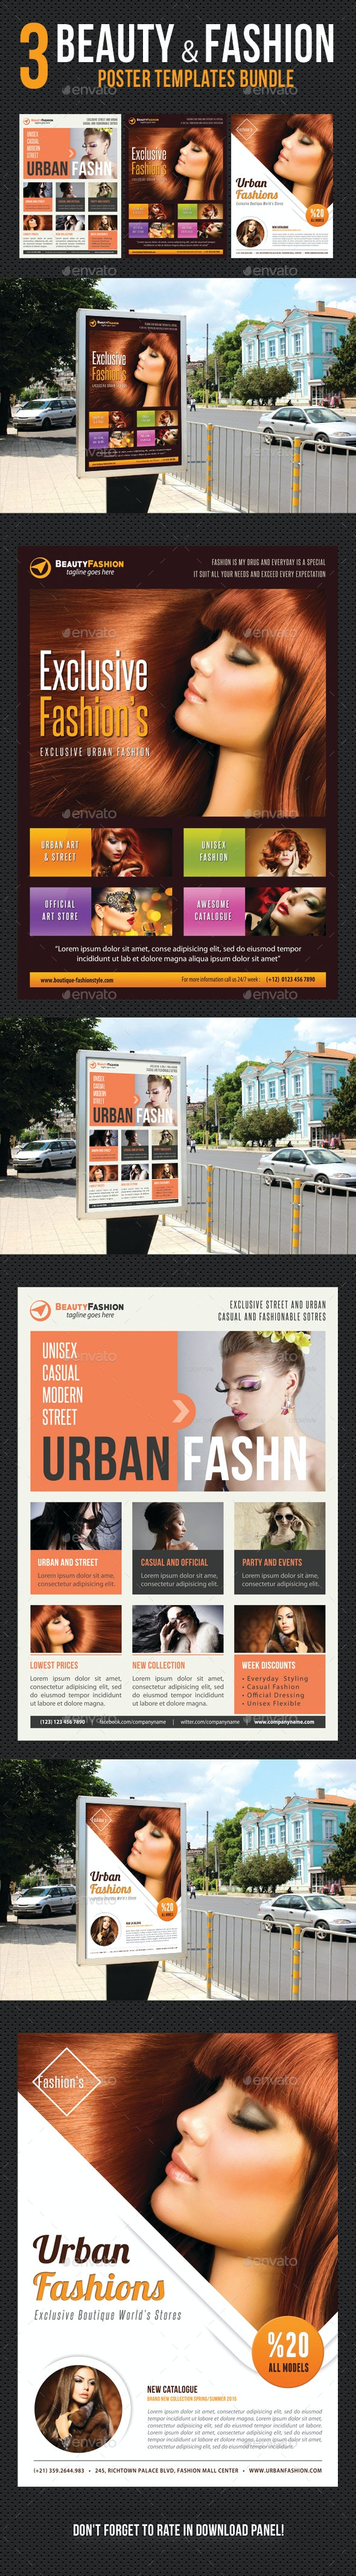 3 in 1 Beauty and Fashion Poster Bundle - Signage Print Templates